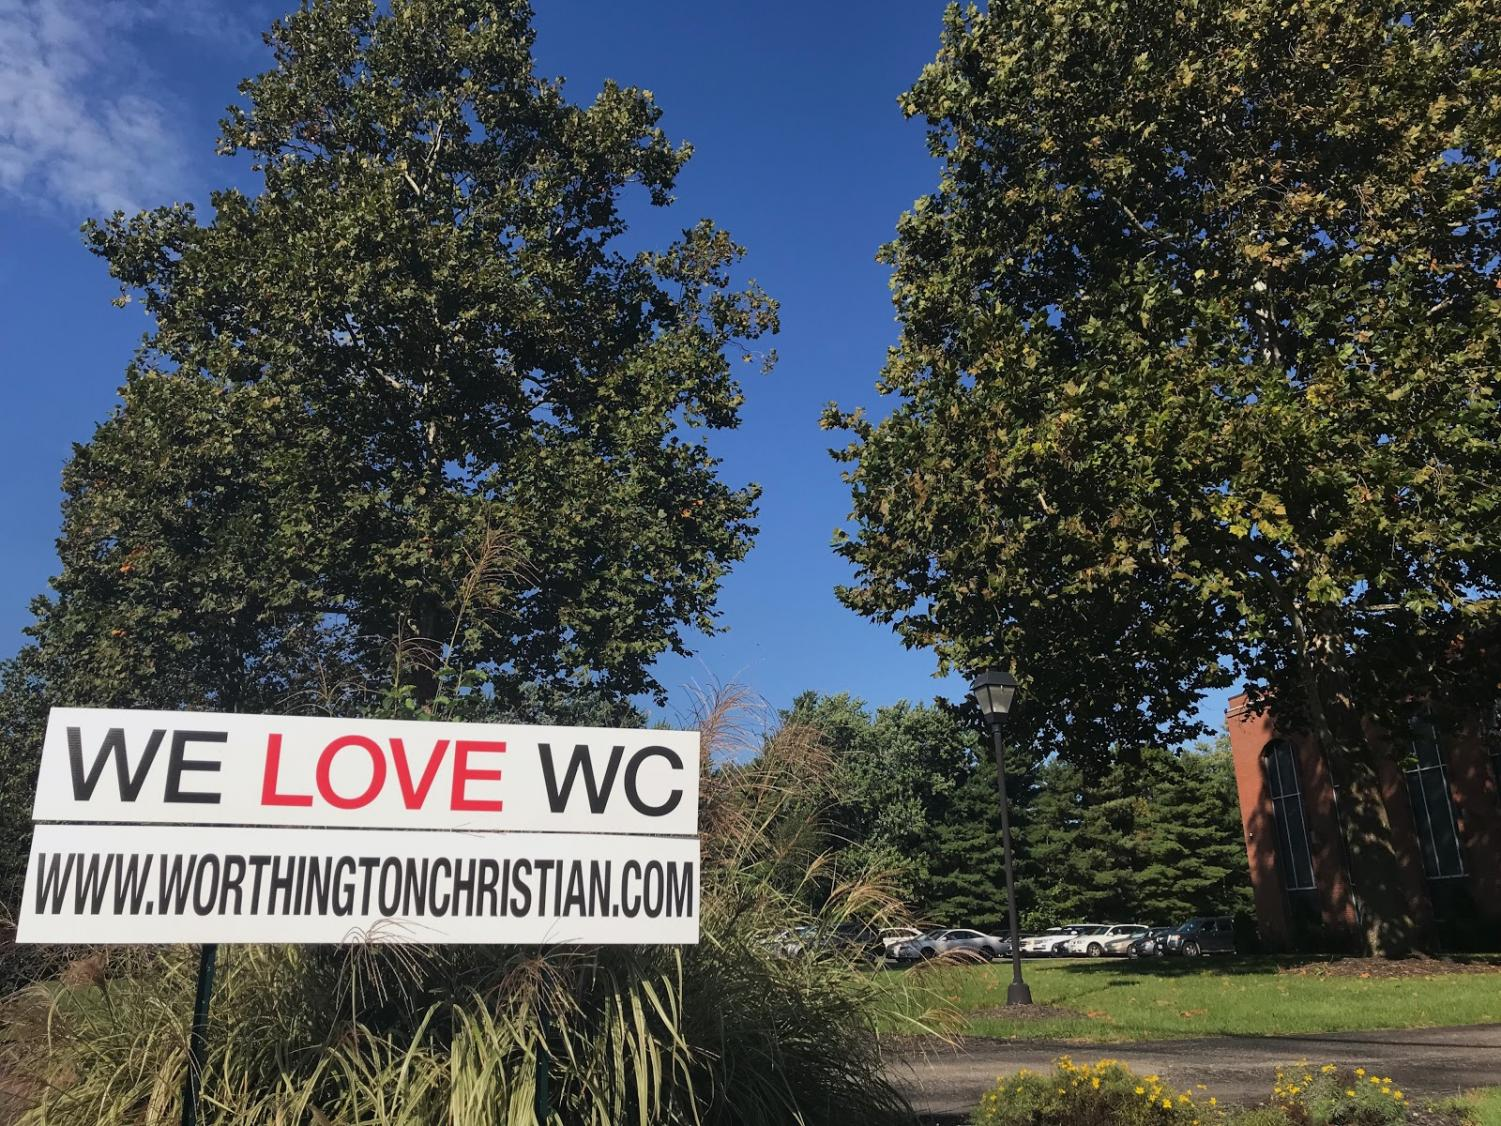 Worthington Christian places signs outside of their school that closely resemble the signs that Tim Ball uses to promote the ABCs of Betrayal website. Worthington Christian playfully mocks his cause by promoting love.